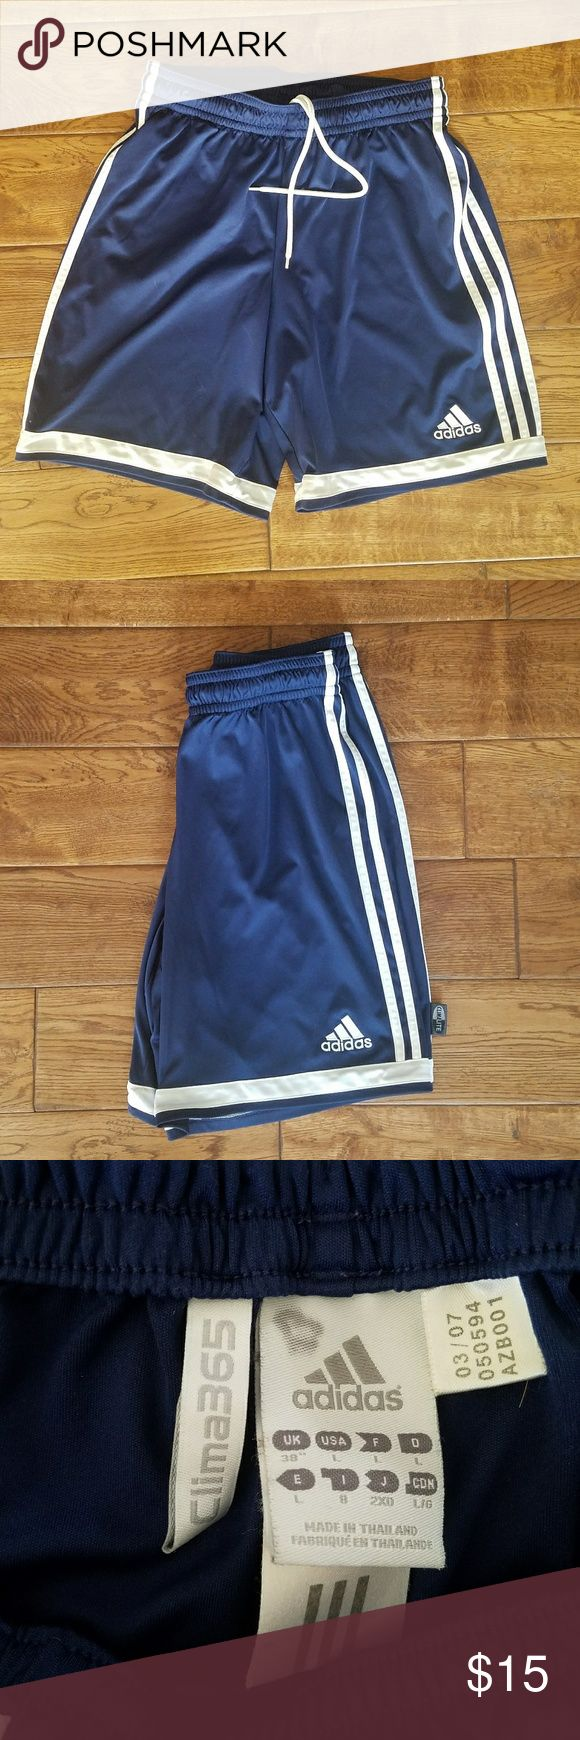 Adidas Soccer Shorts Unisex adidas soccer shorts with drawstring, elastic, and logo in perfect condition. adidas Shorts Athletic